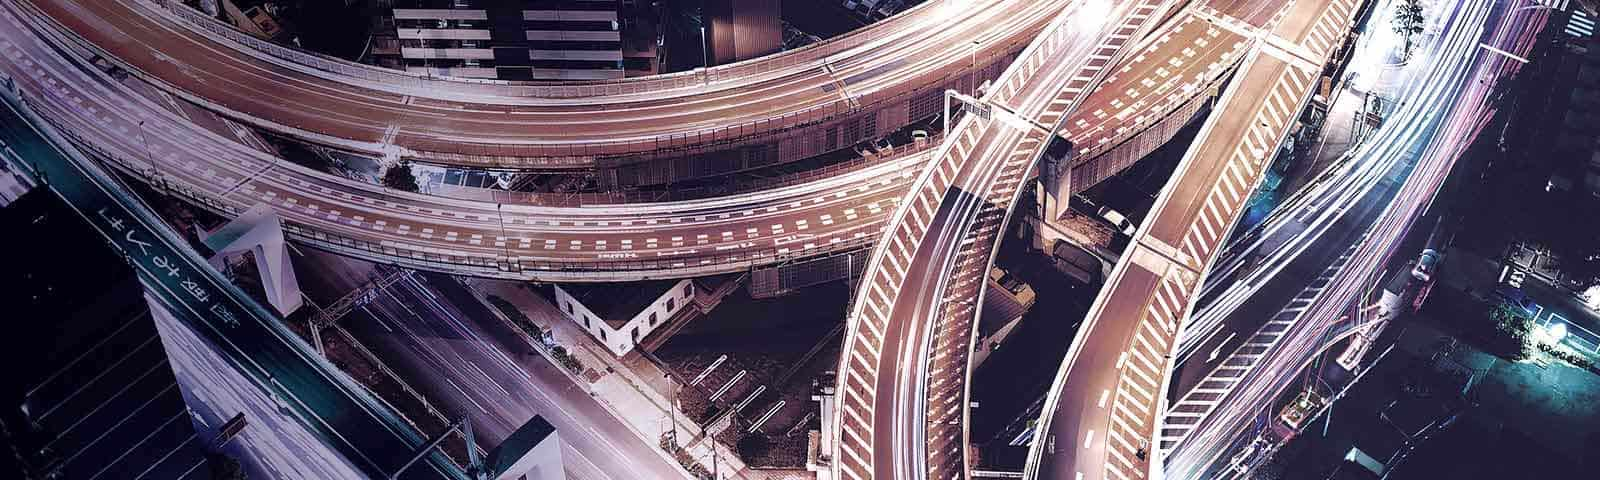 Overhead shot of a highway interchange